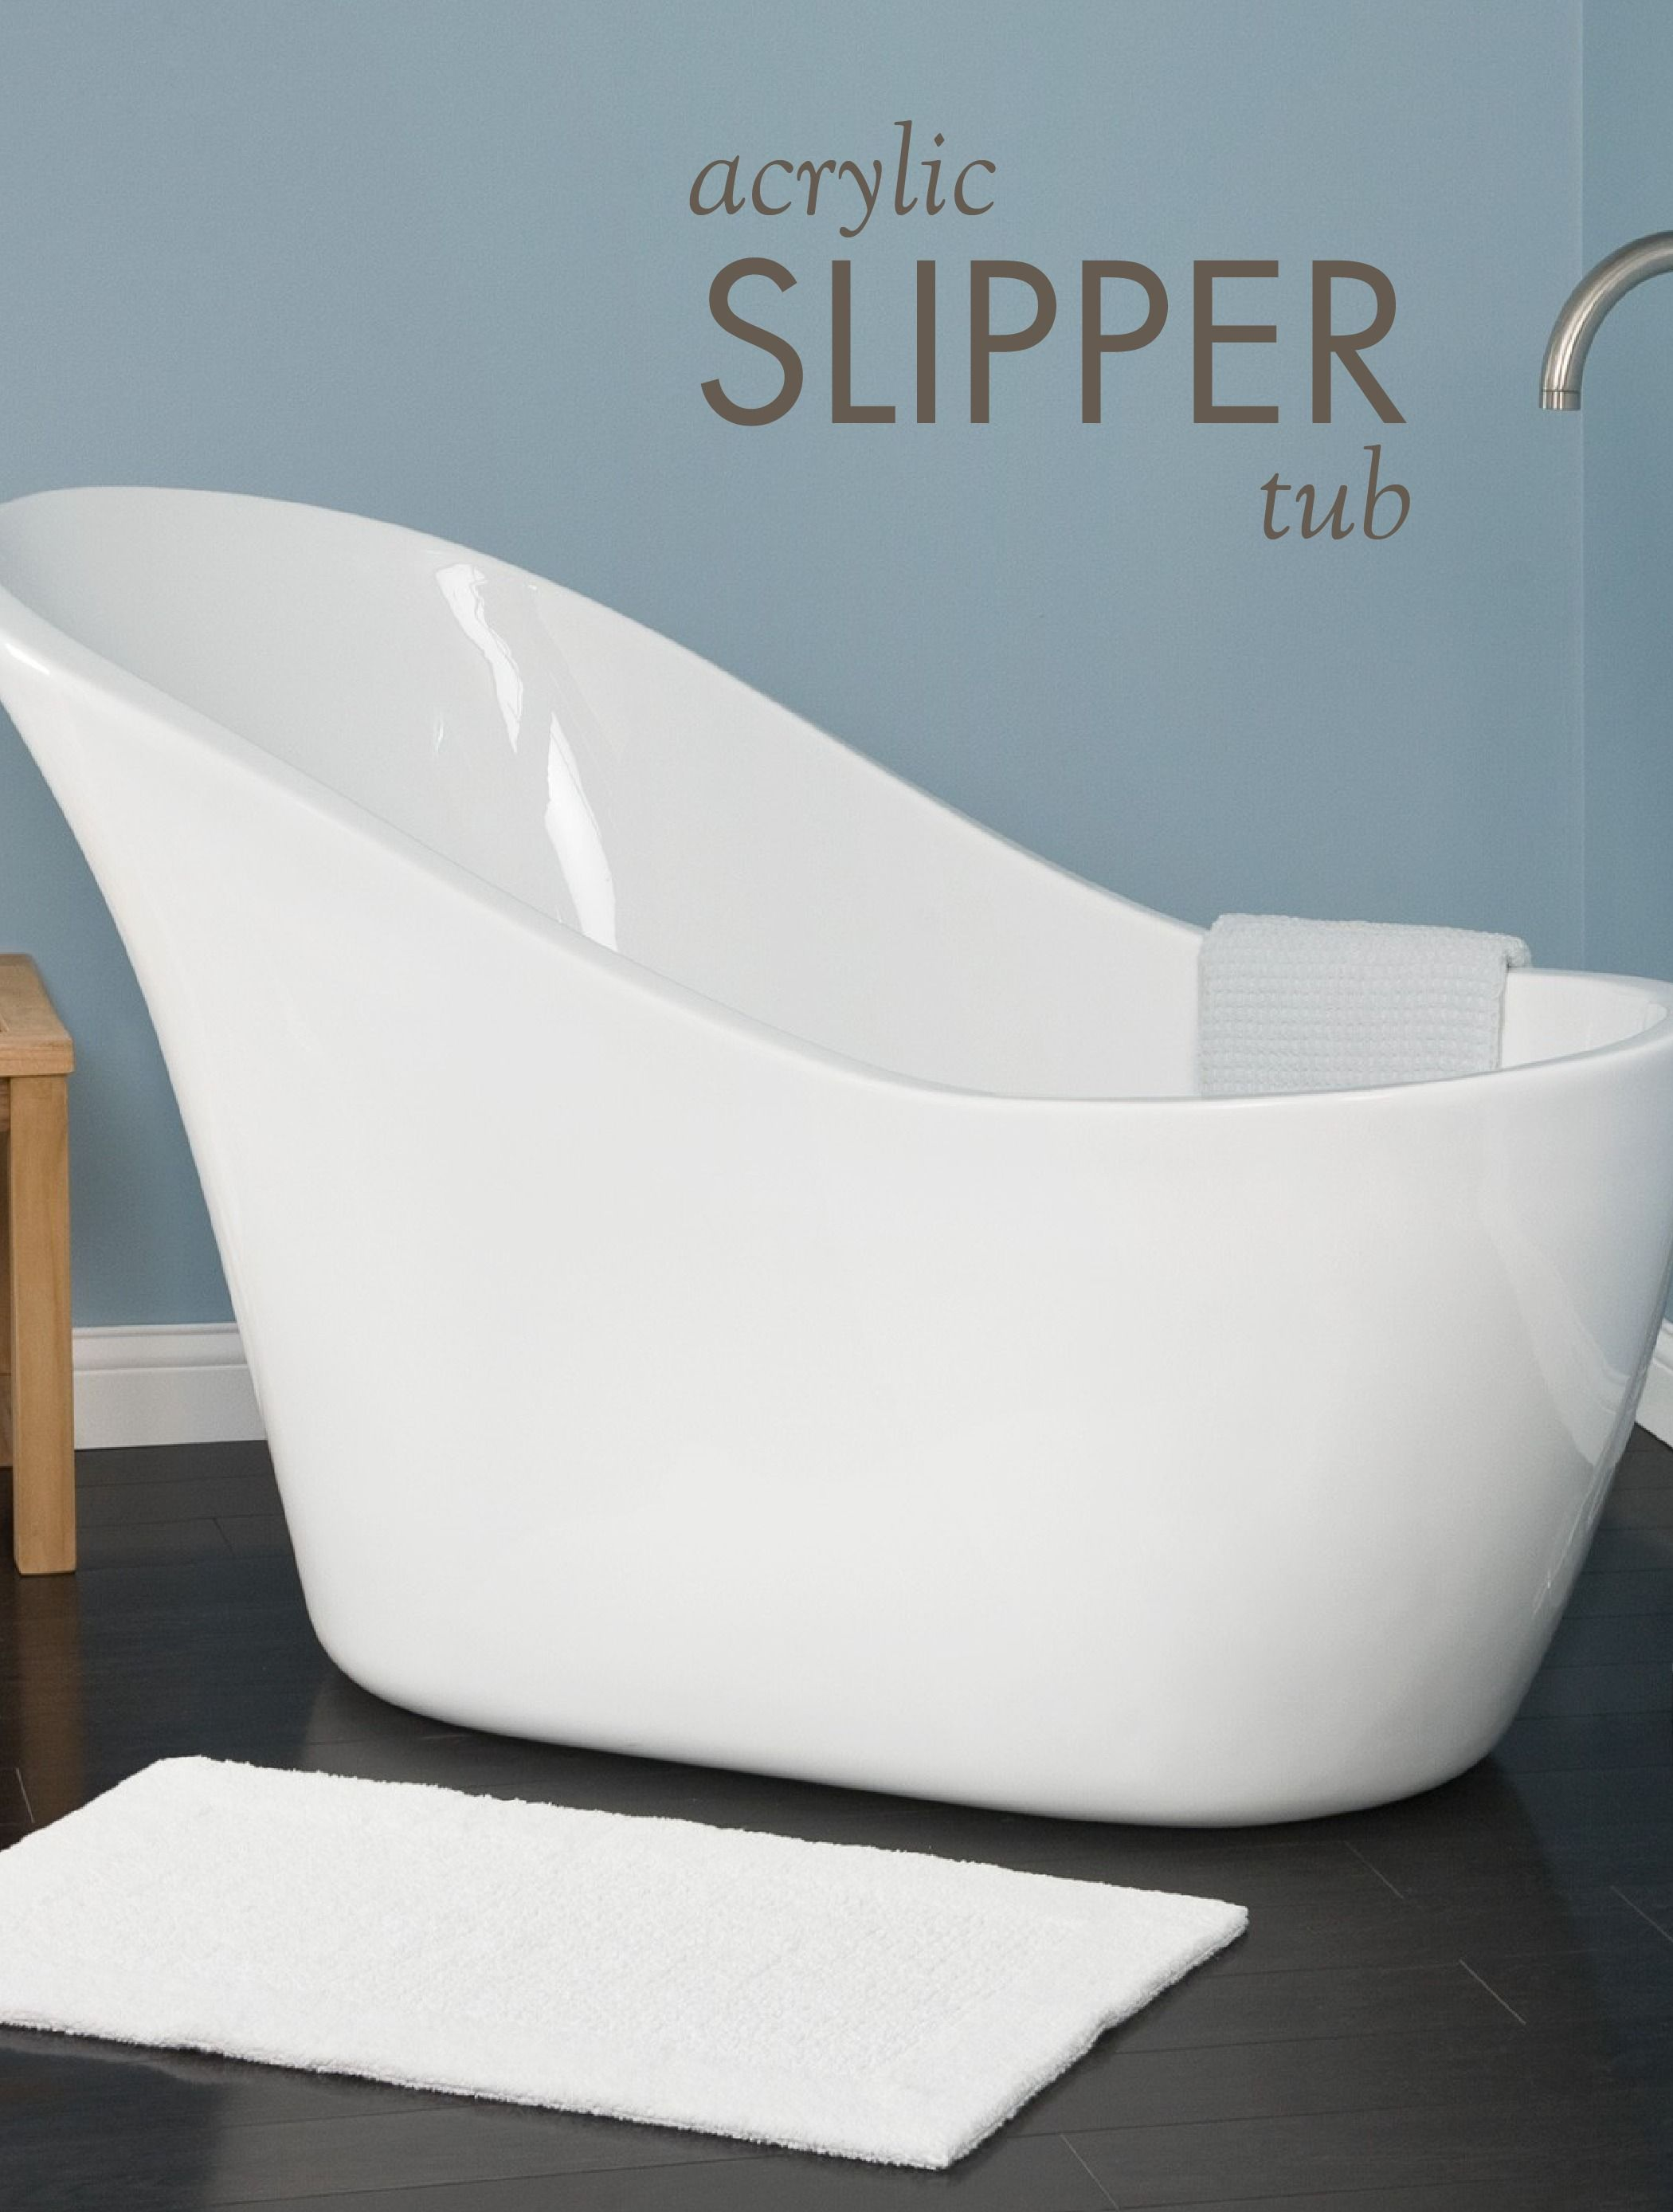 Medlin Acrylic Slipper Tub | Pinterest | Tubs, Walls and Bathtubs